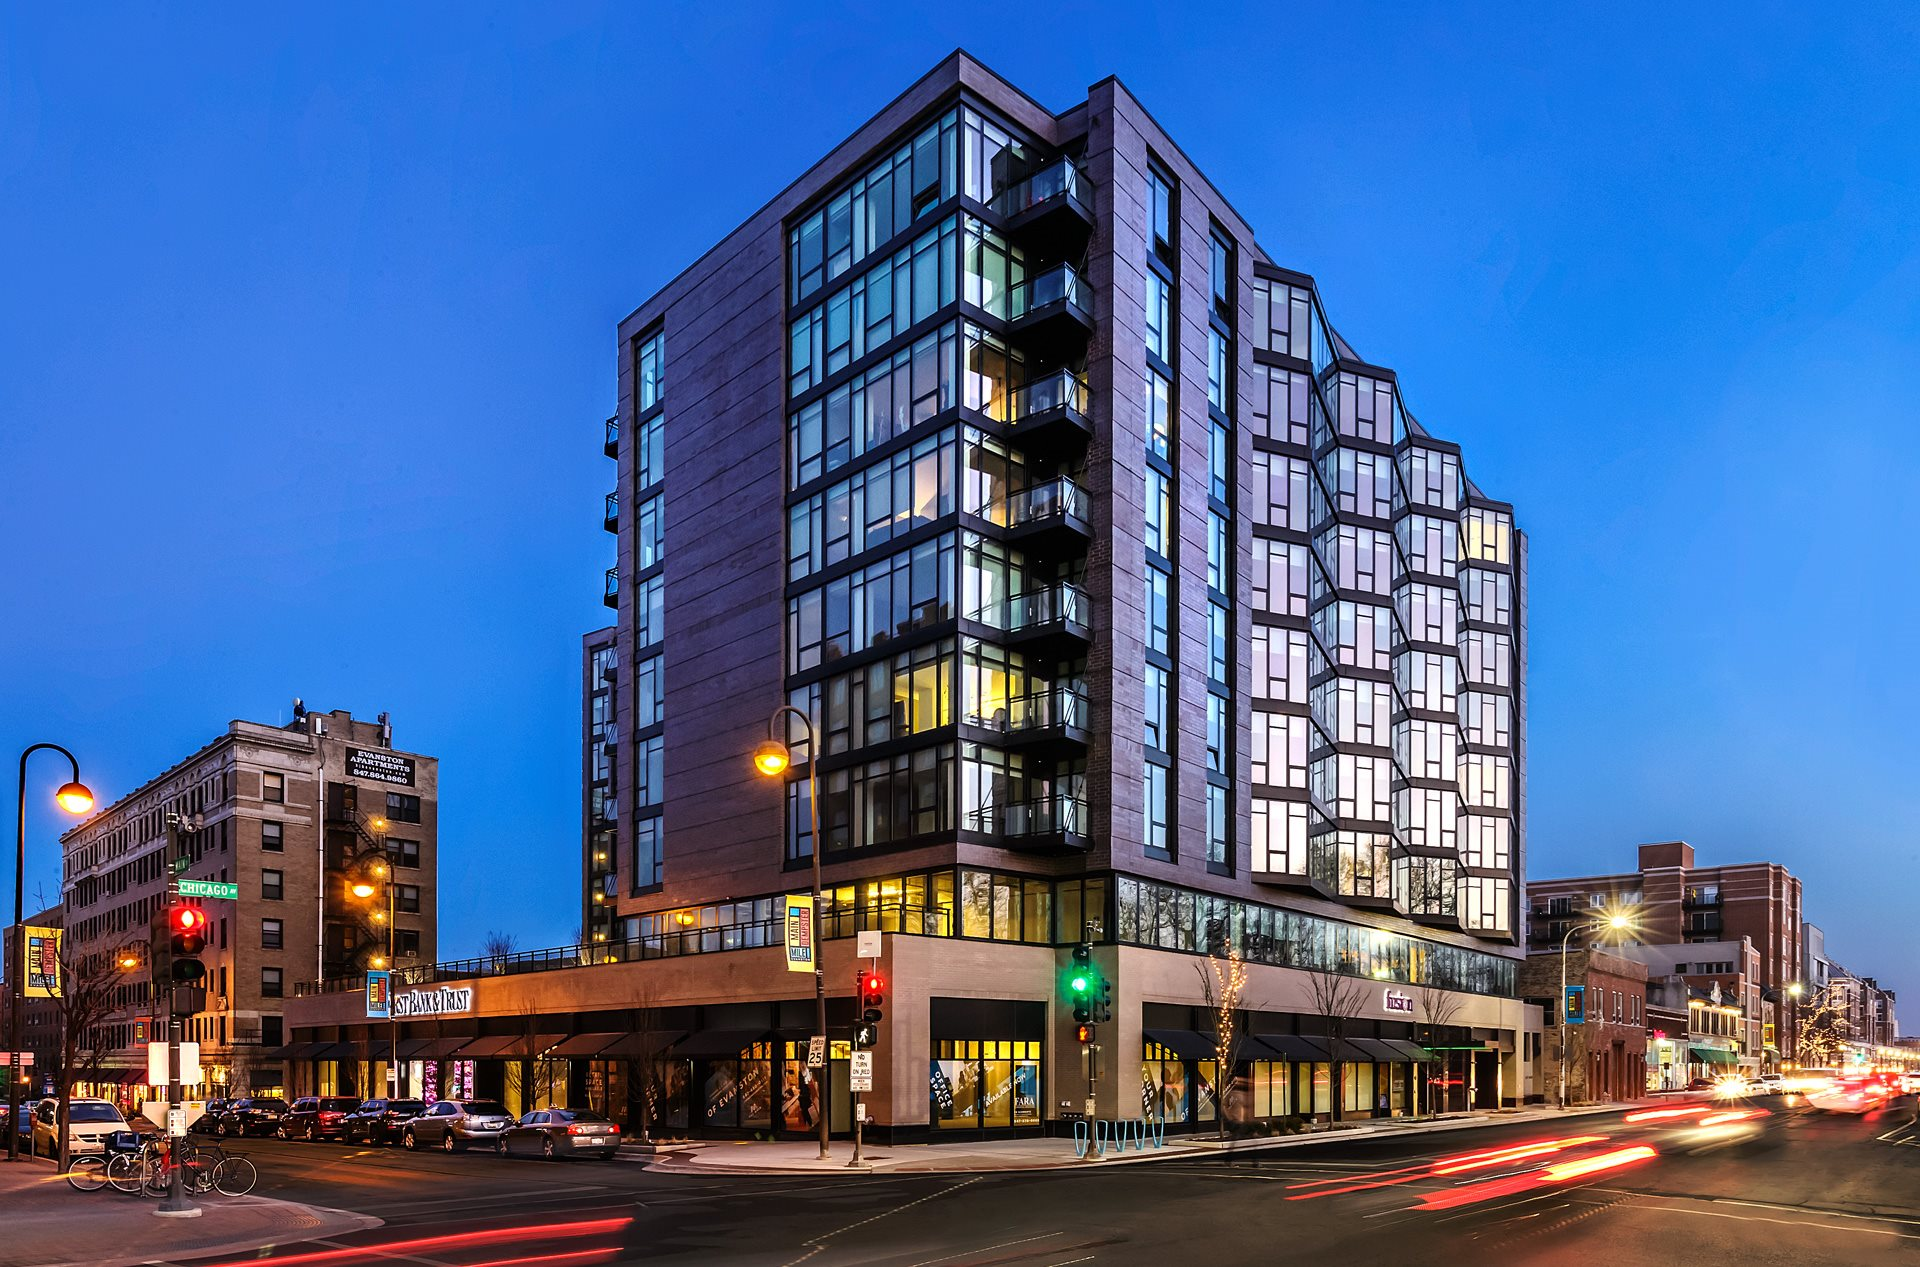 Apartments for Rent in Evanston, IL - The Main Apartments Exterior Building View at Night